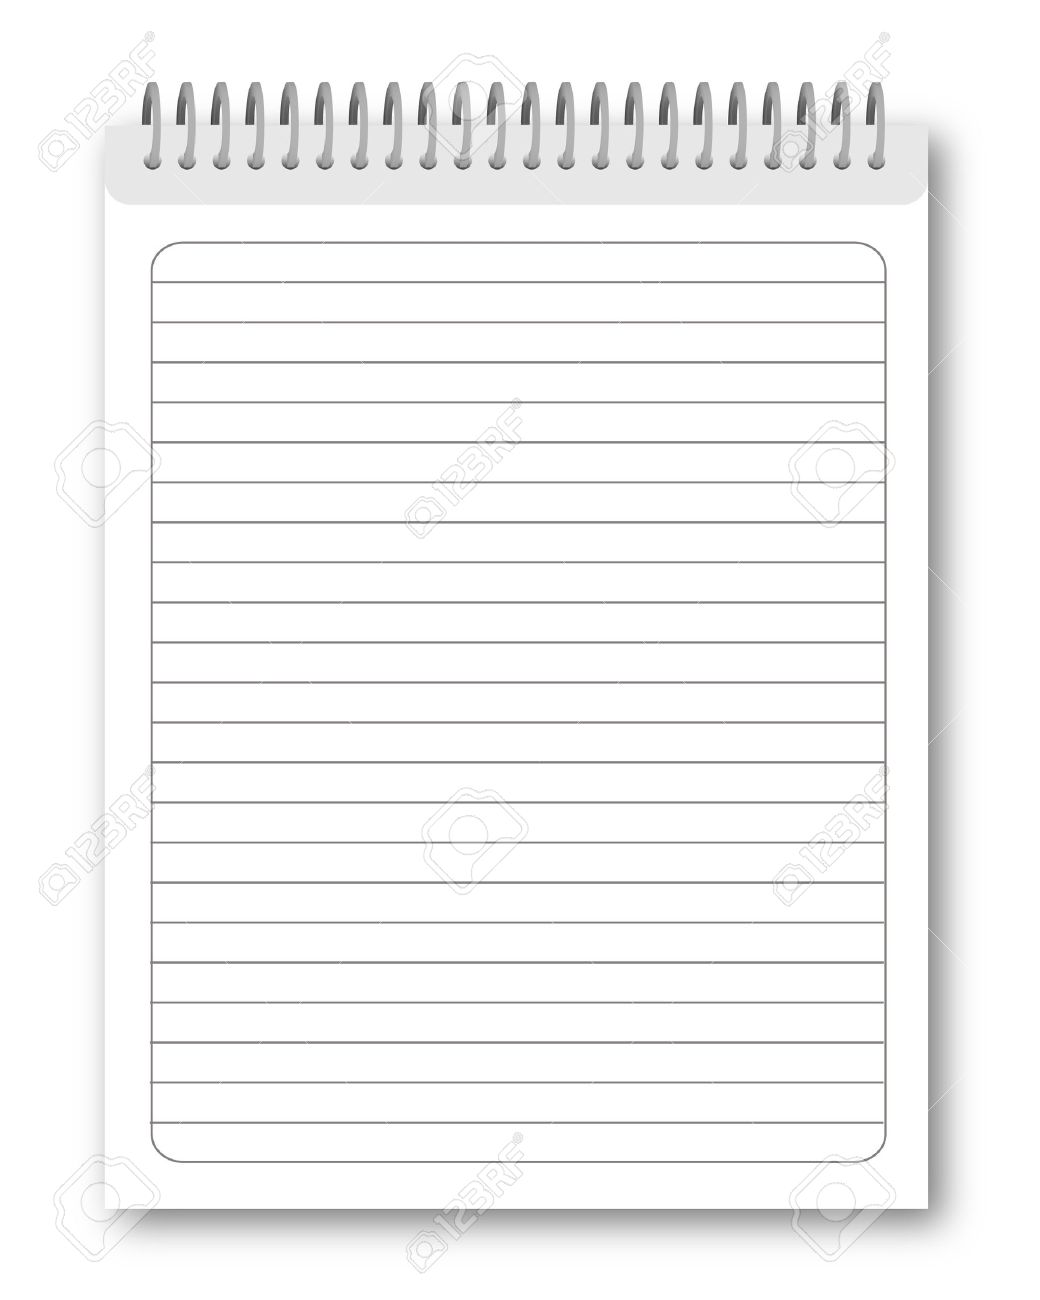 blank spiral notebook isolated on white background. illustration